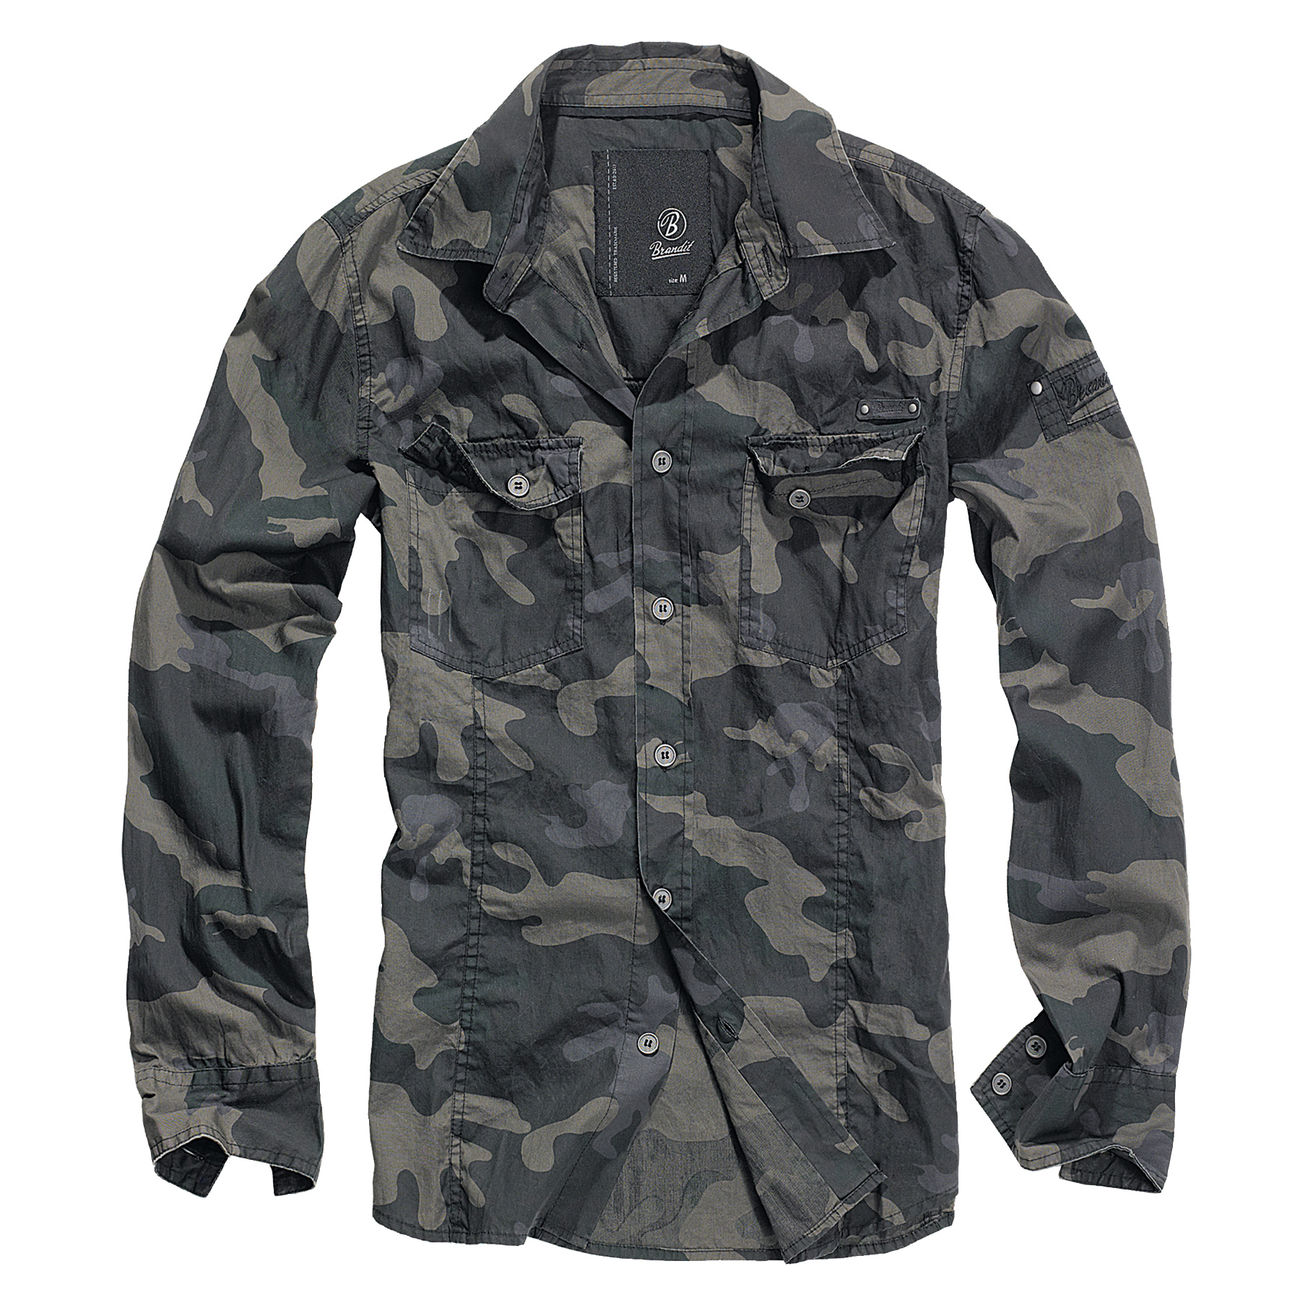 Brandit Hemd Slim Fit Shirt dark camo 0